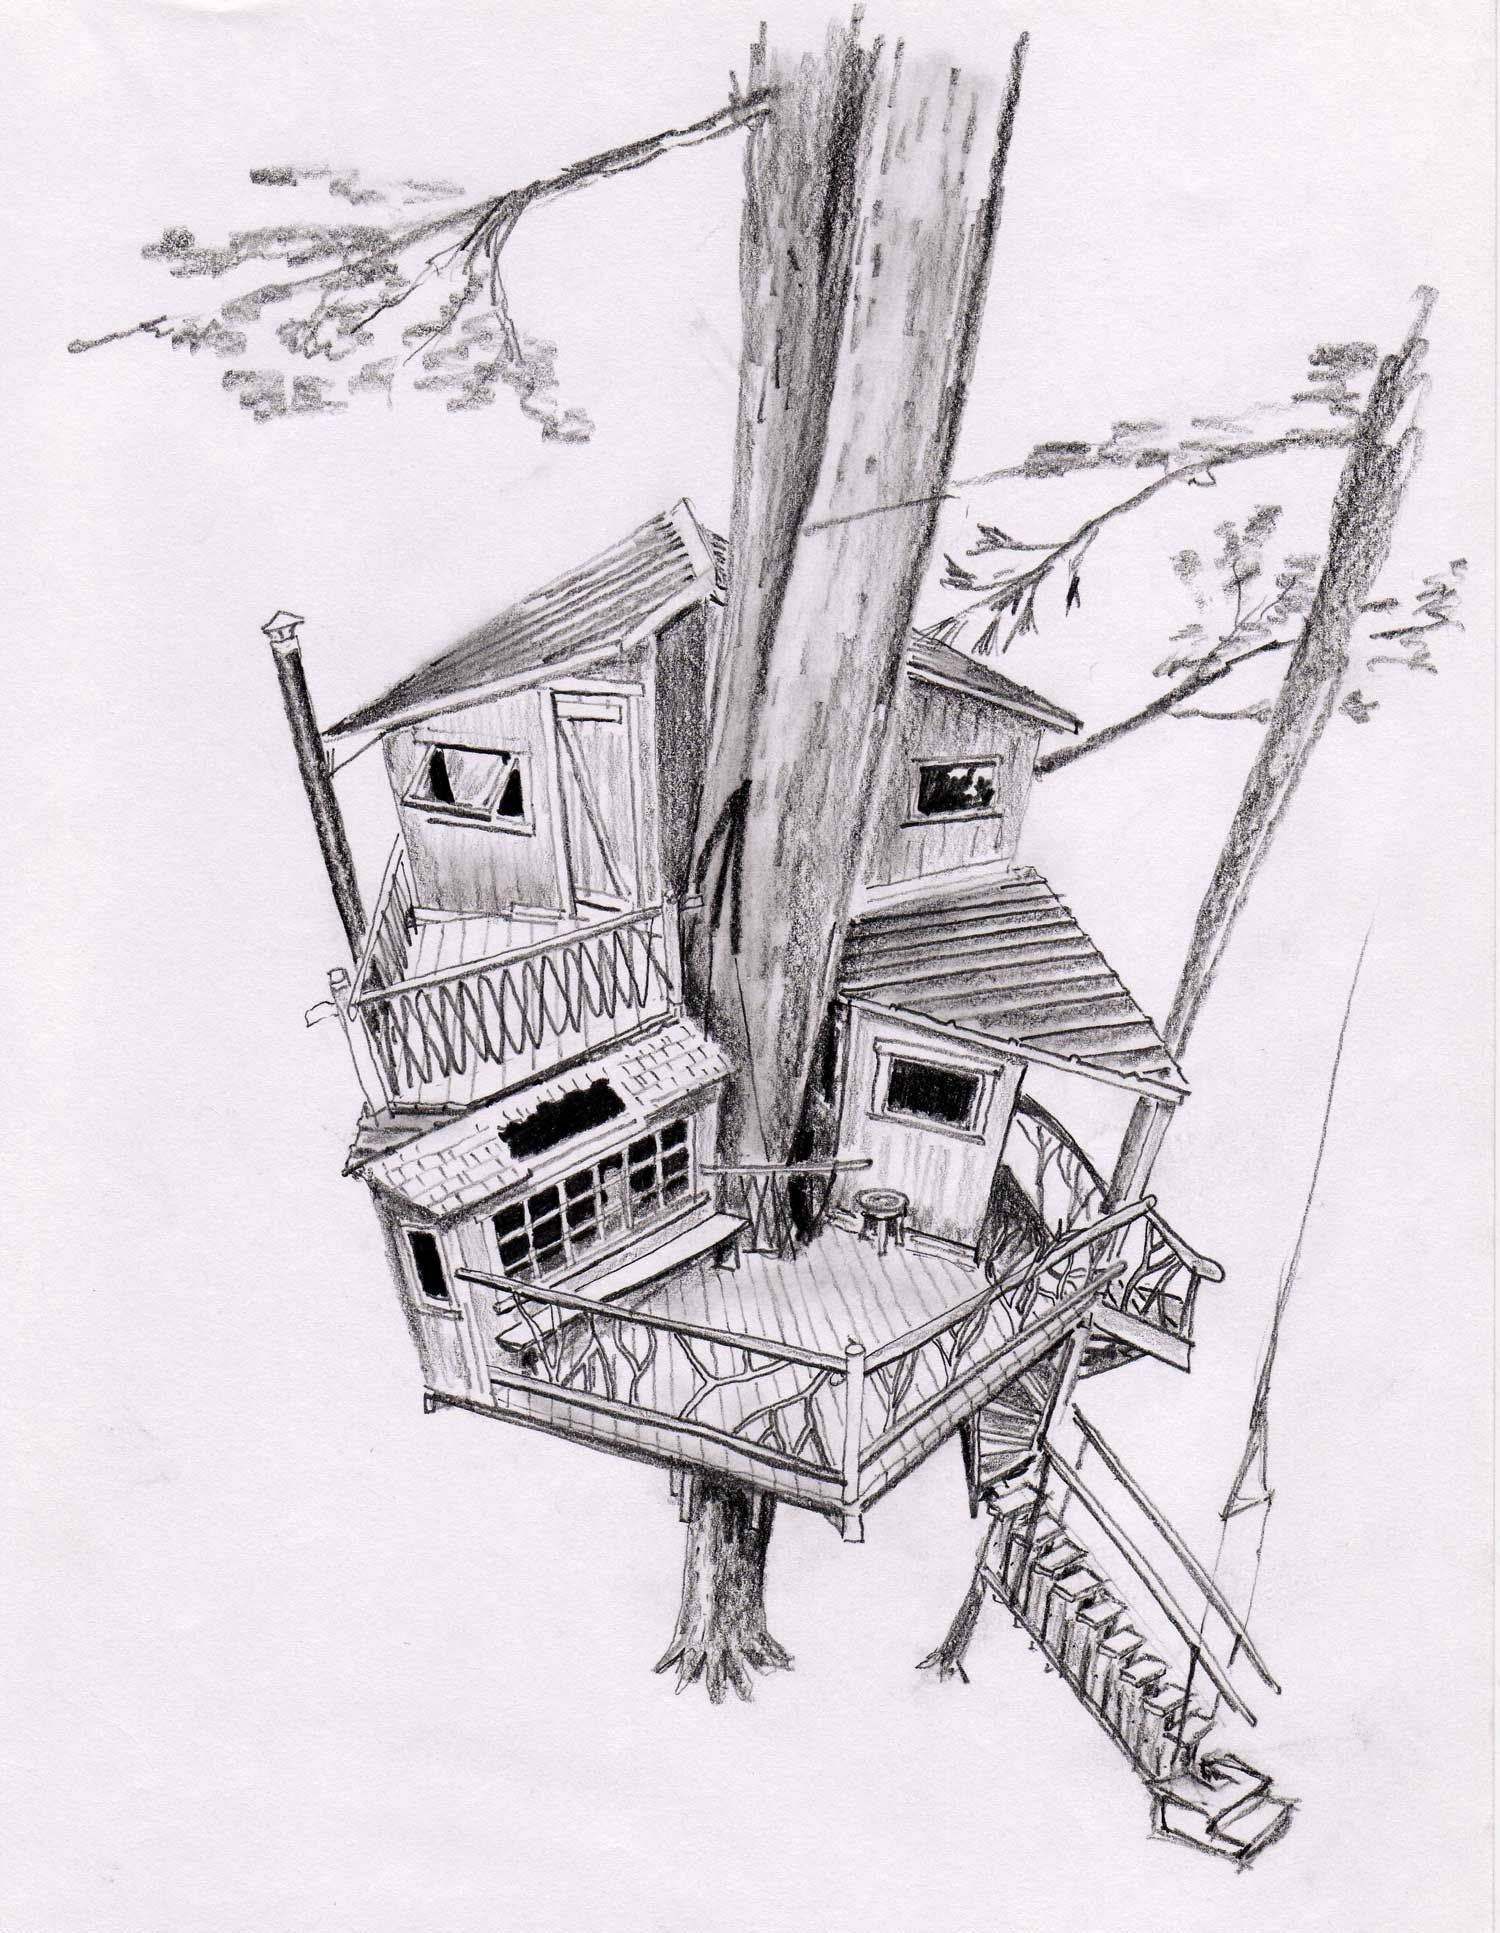 Inside House Drawing: Interior Design Of Architecture Beautiful Tree House